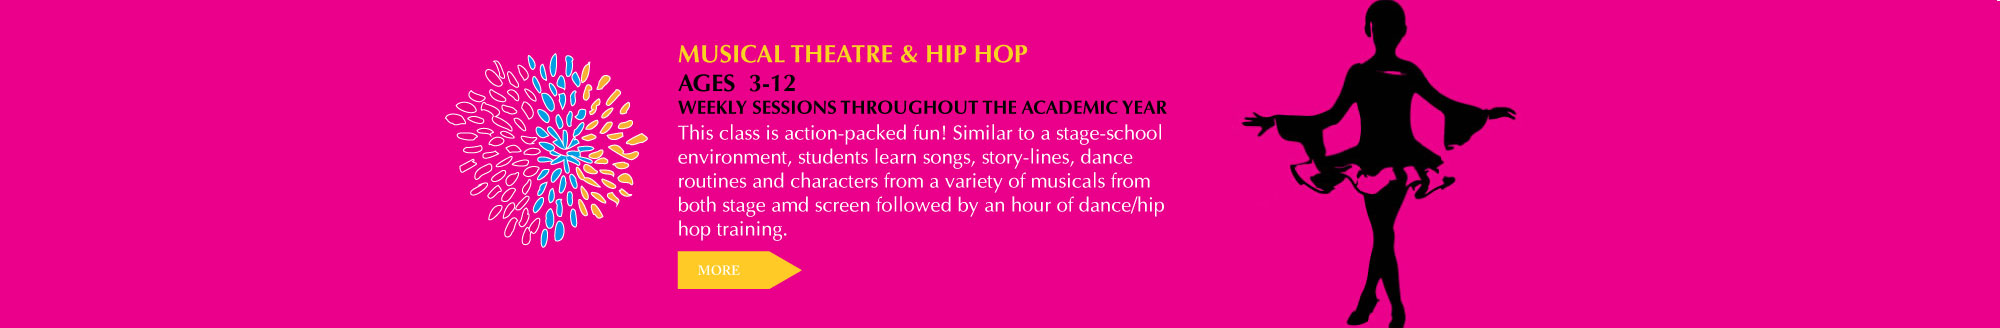 Musical-theatre-and-hip-hop